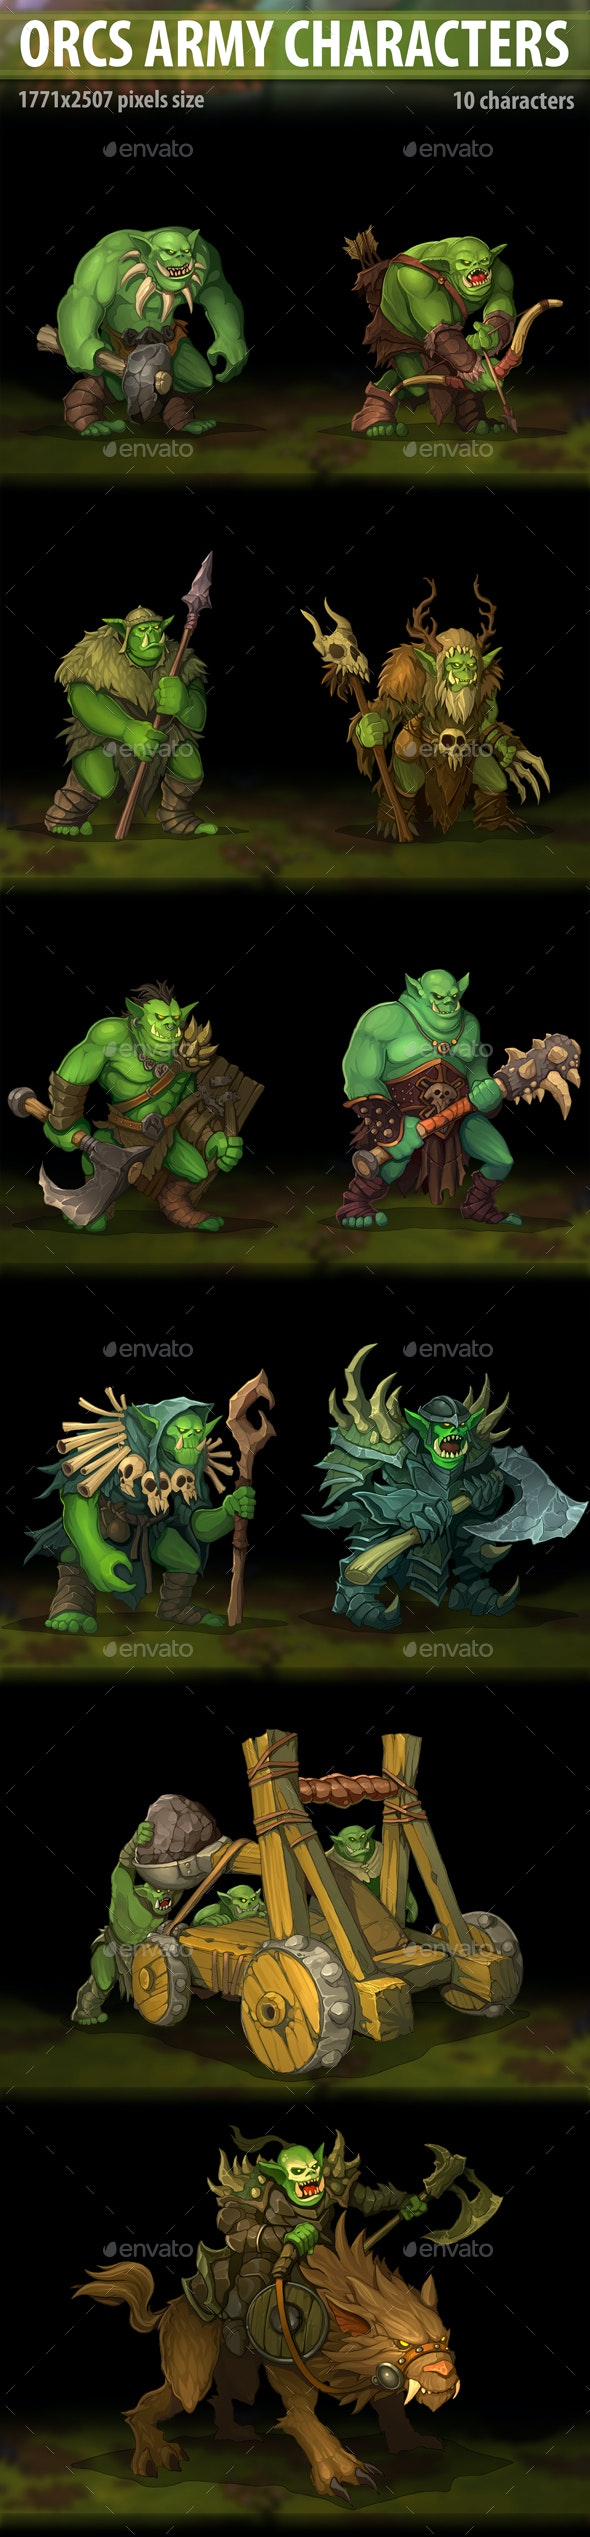 Orcs Army Characters - Miscellaneous Game Assets